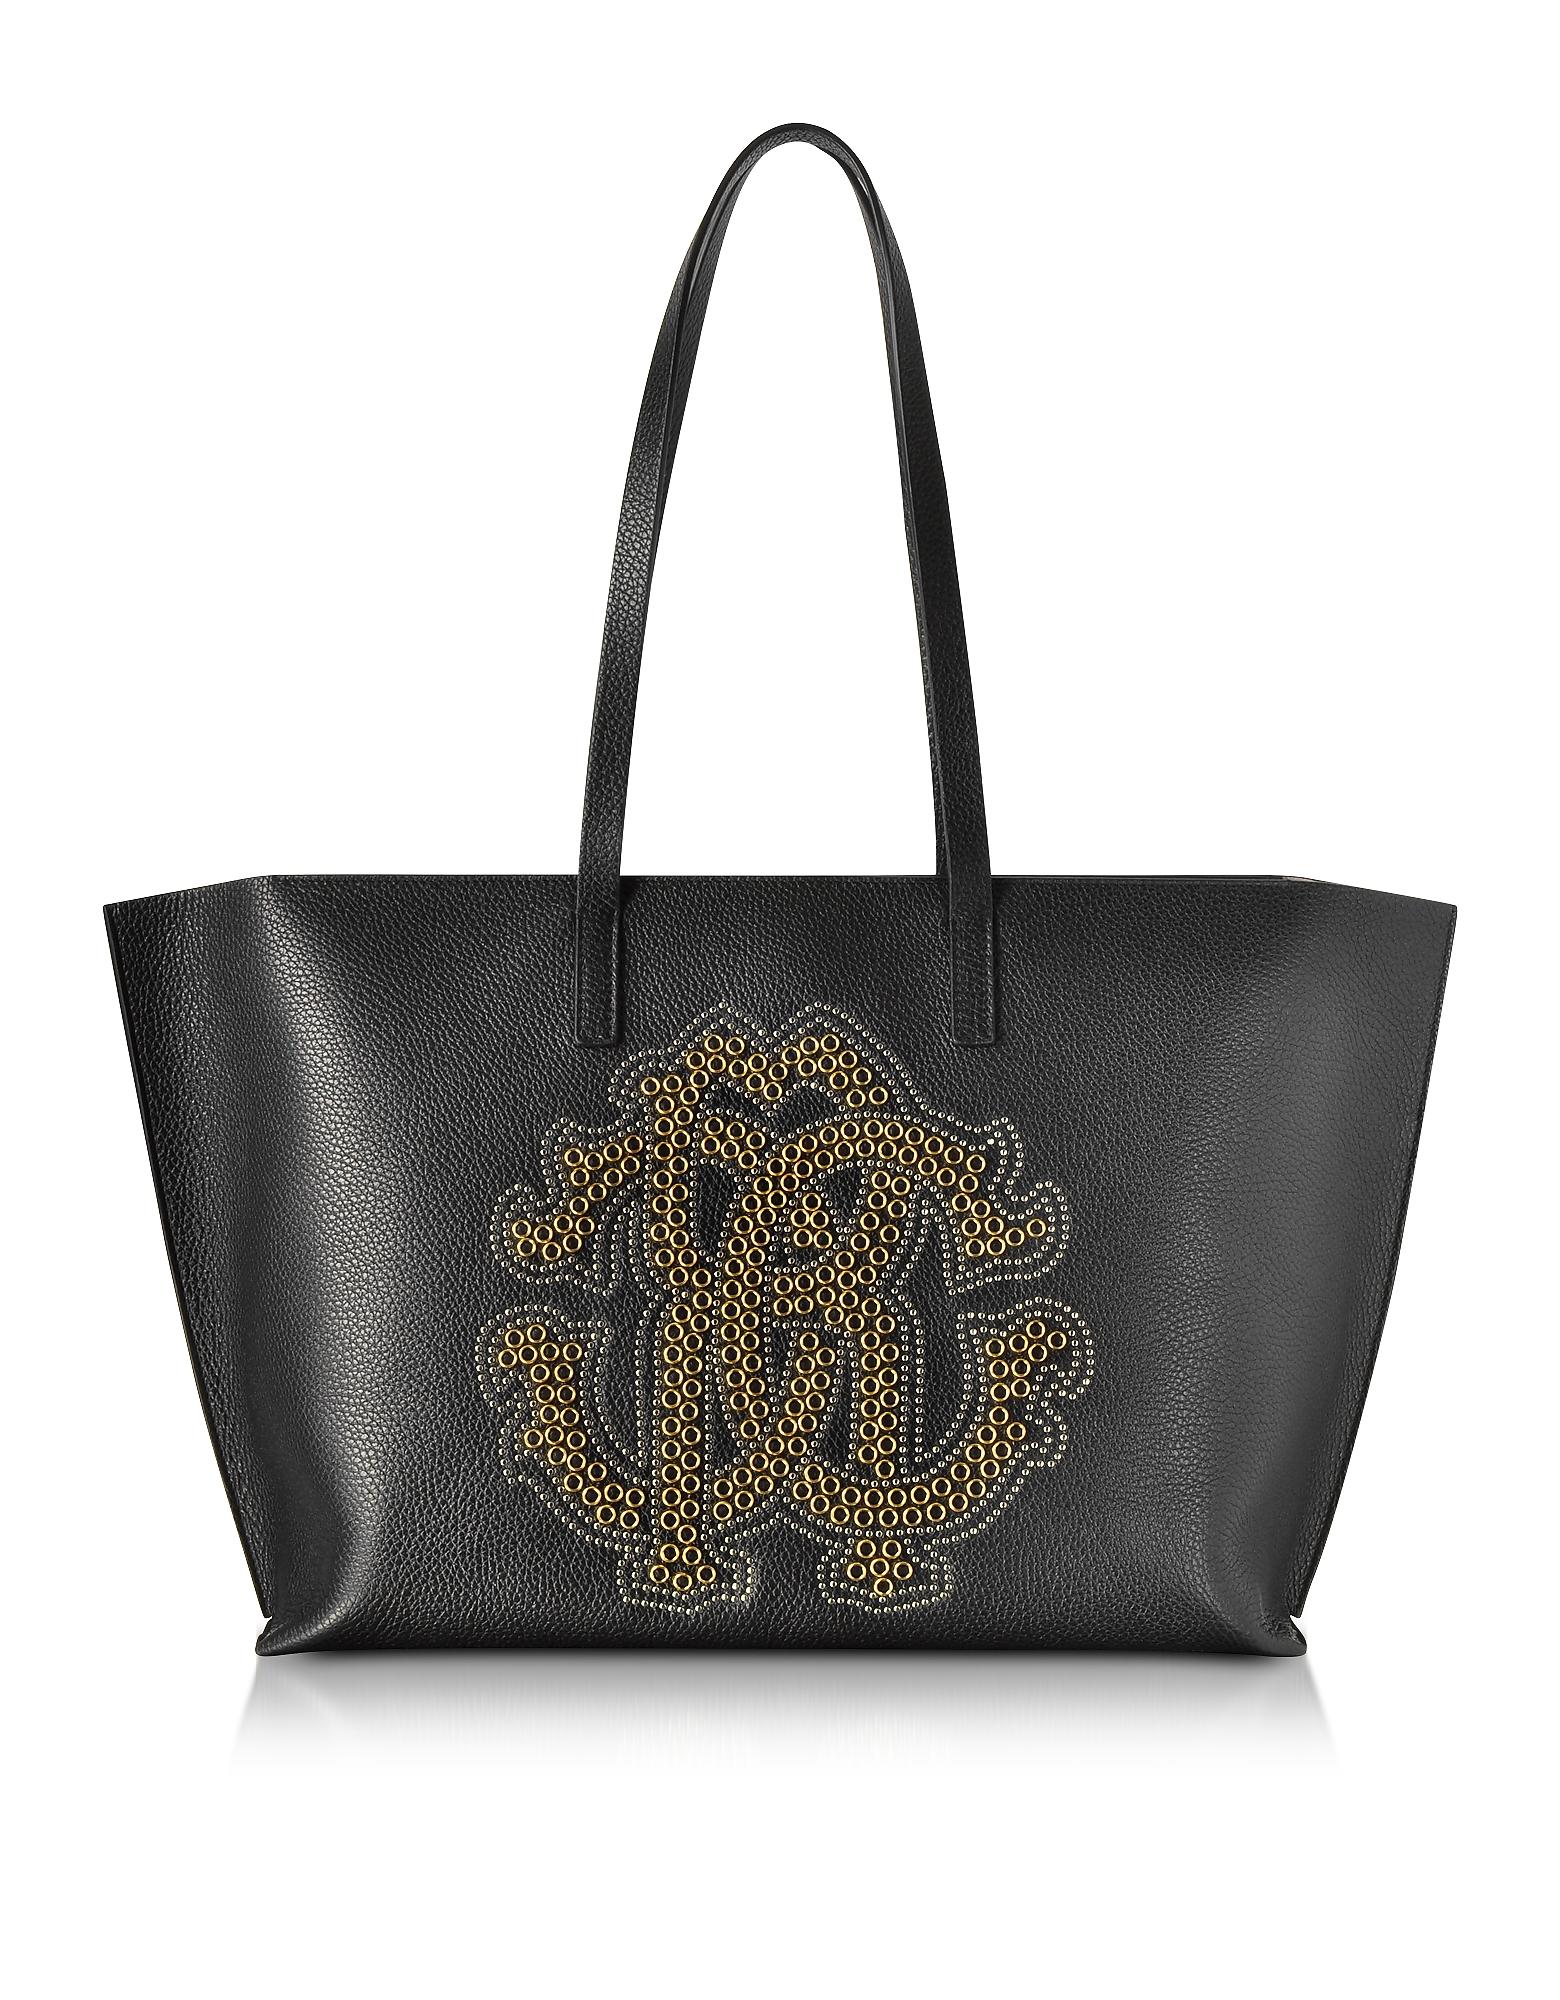 Roberto Cavalli Handbags, Black Leather Unisex Tote Bag w/Gold Studs RC Logo